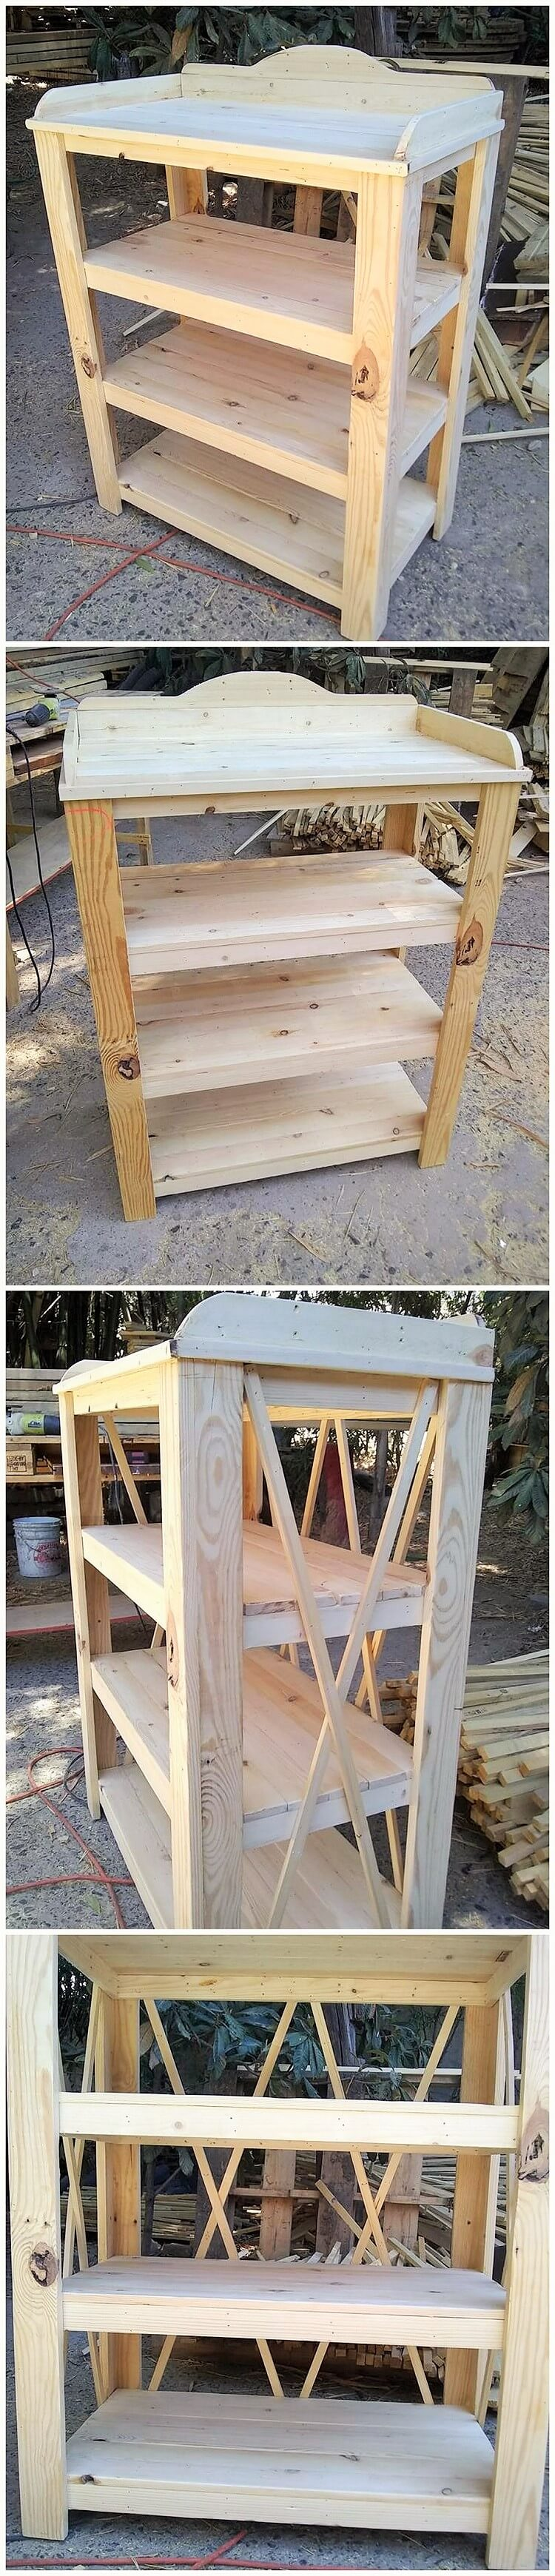 Old-Pallet- Diy-Recycle-Things-Projects-15